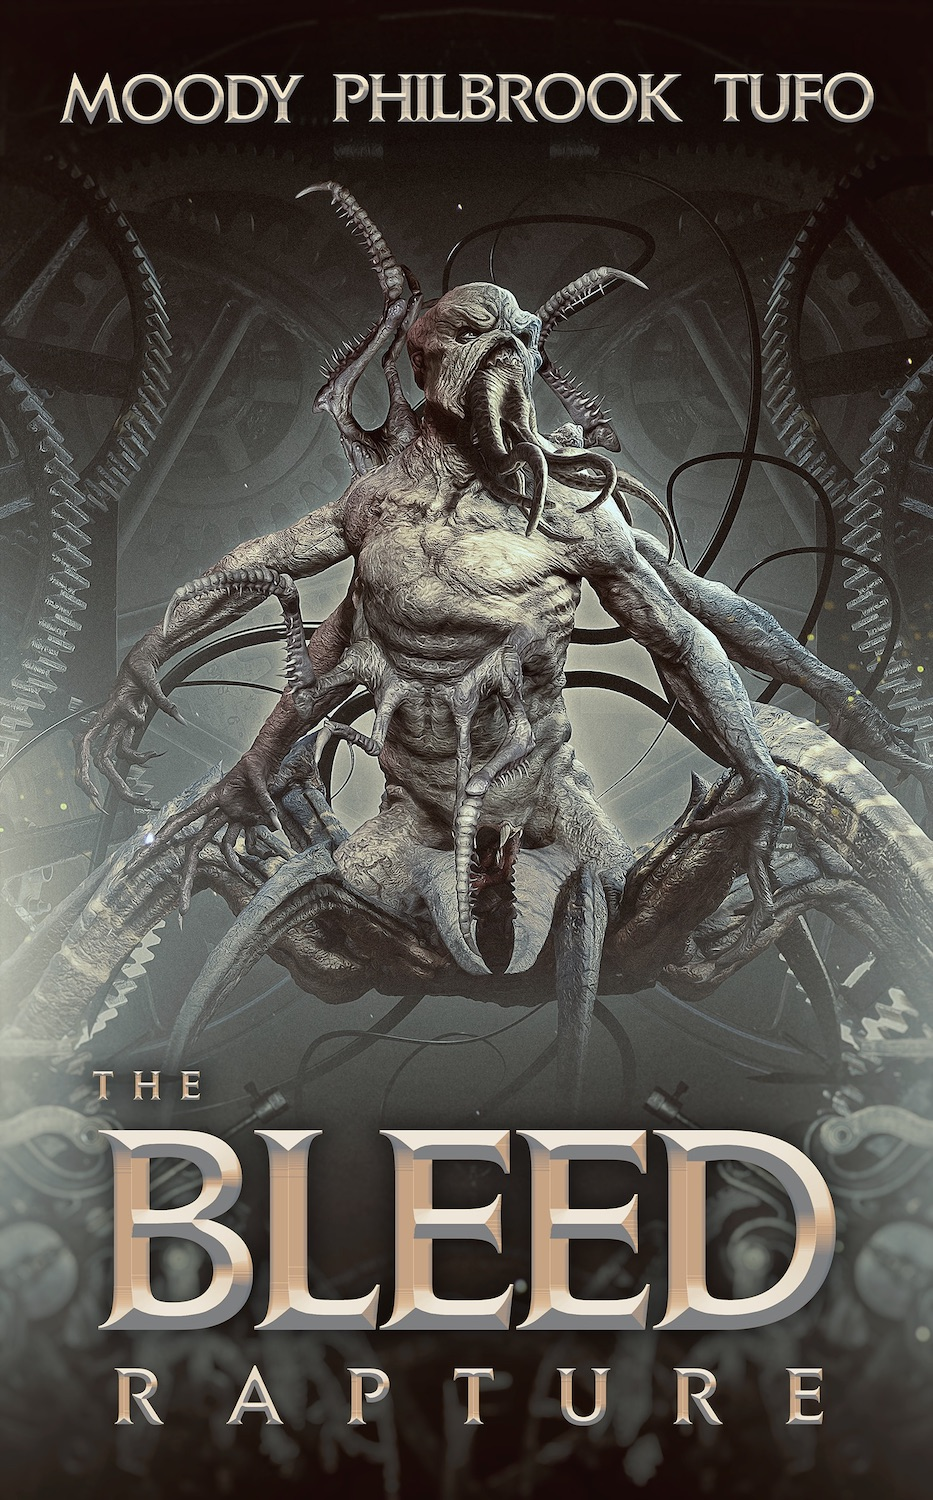 THE BLEED: RAPTURE